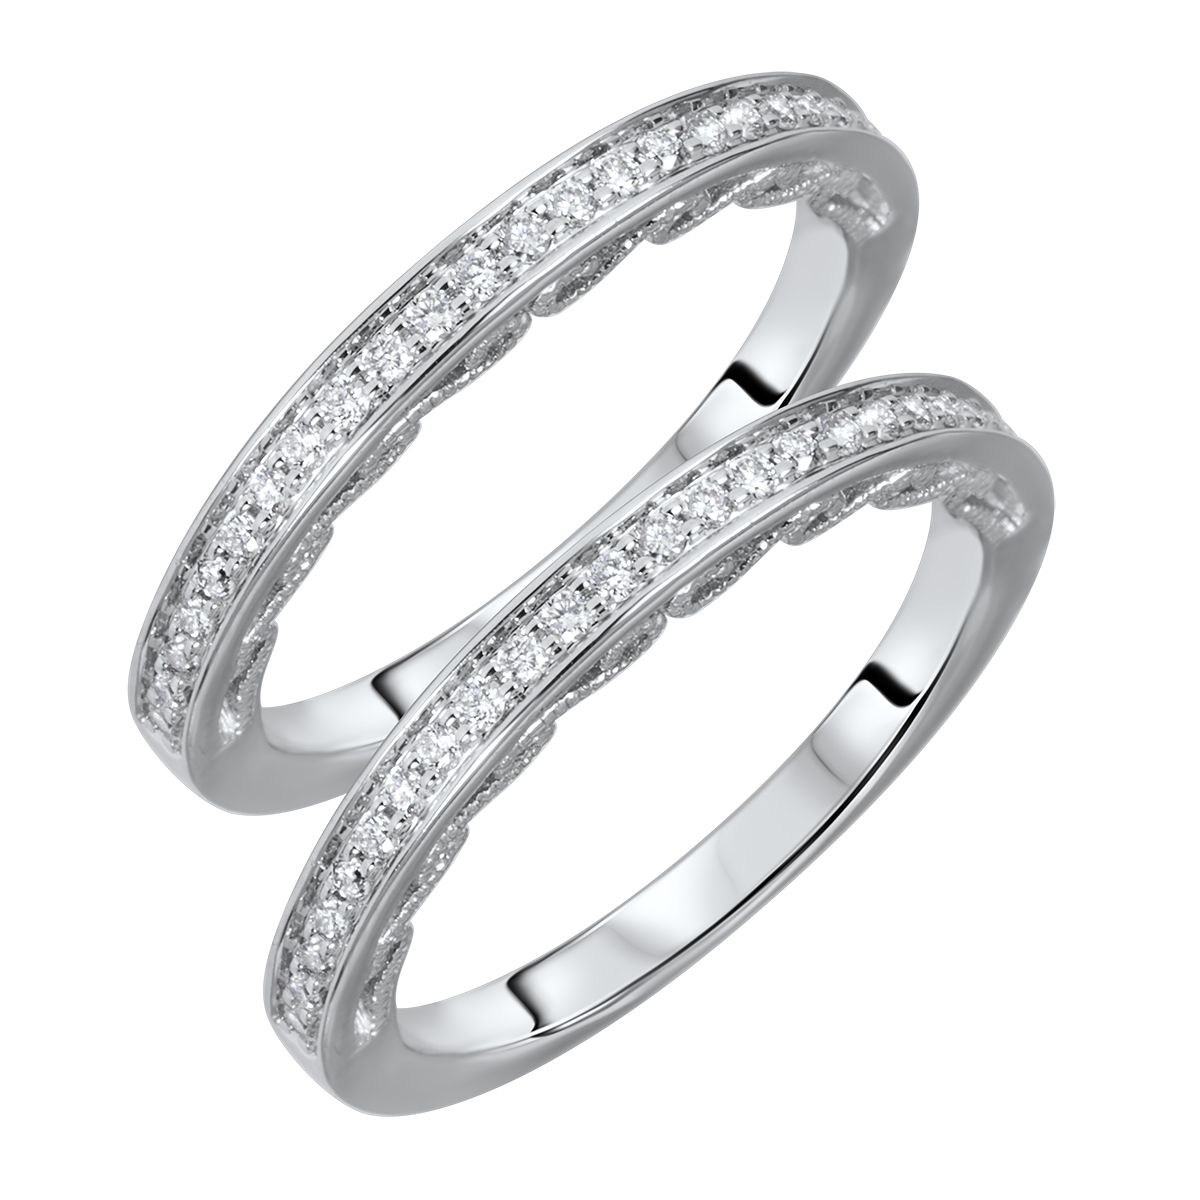 1/3 Carat T.W. Round Cut Ladies Same Sex Wedding Band Set 14K White Gold